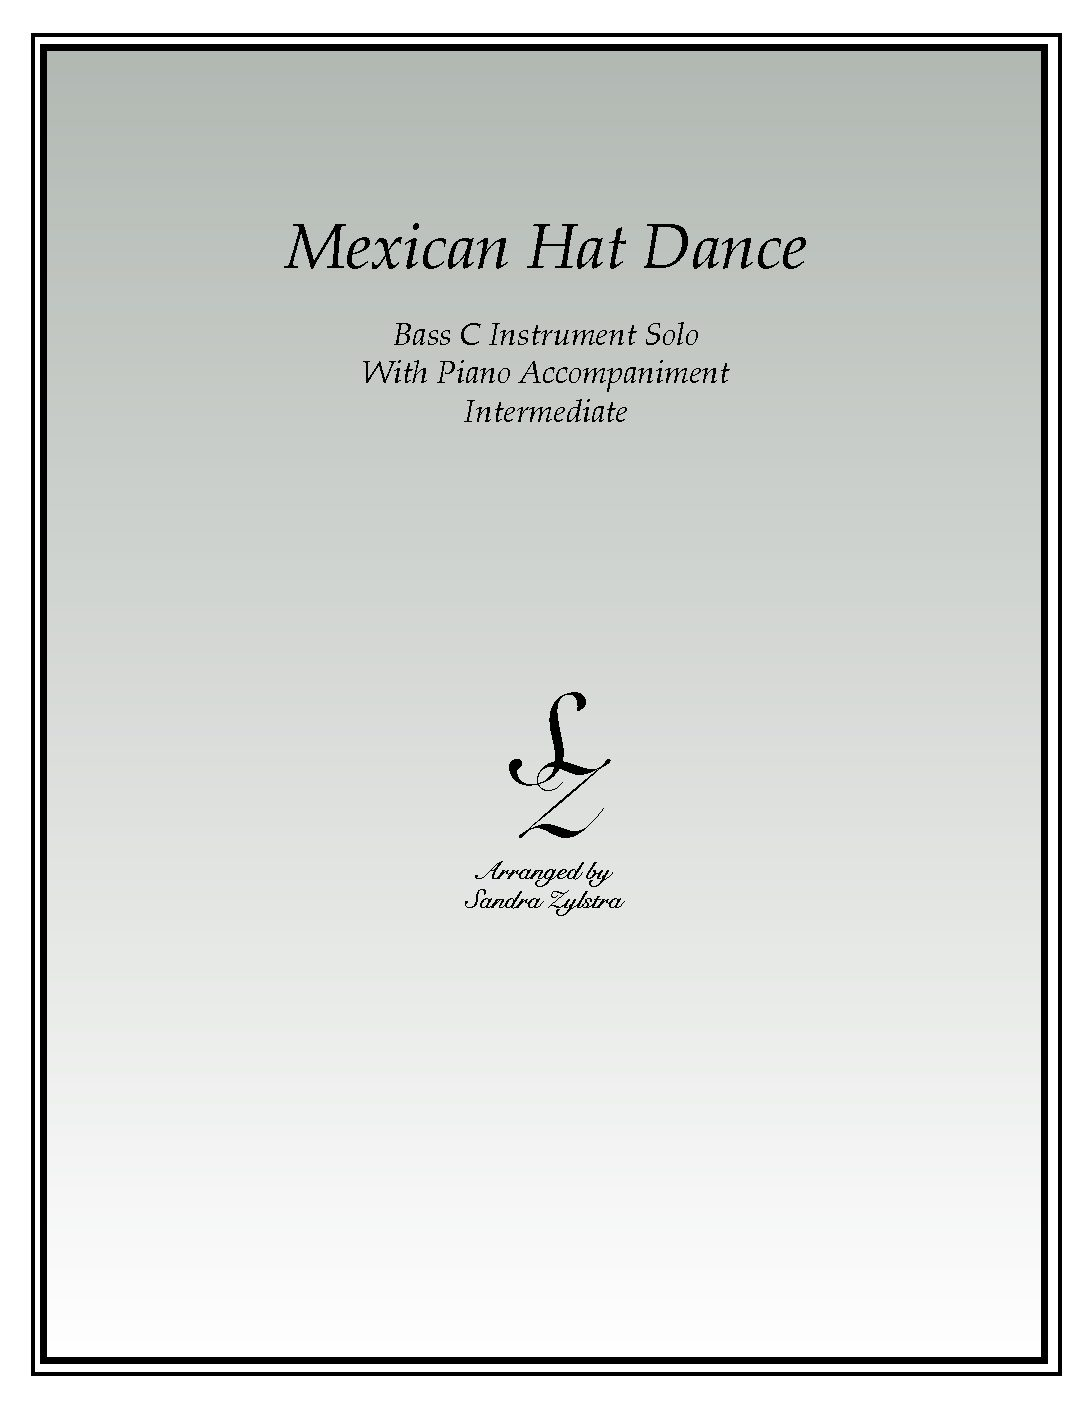 Mexican Hat Dance -Bass C Instrument Solo